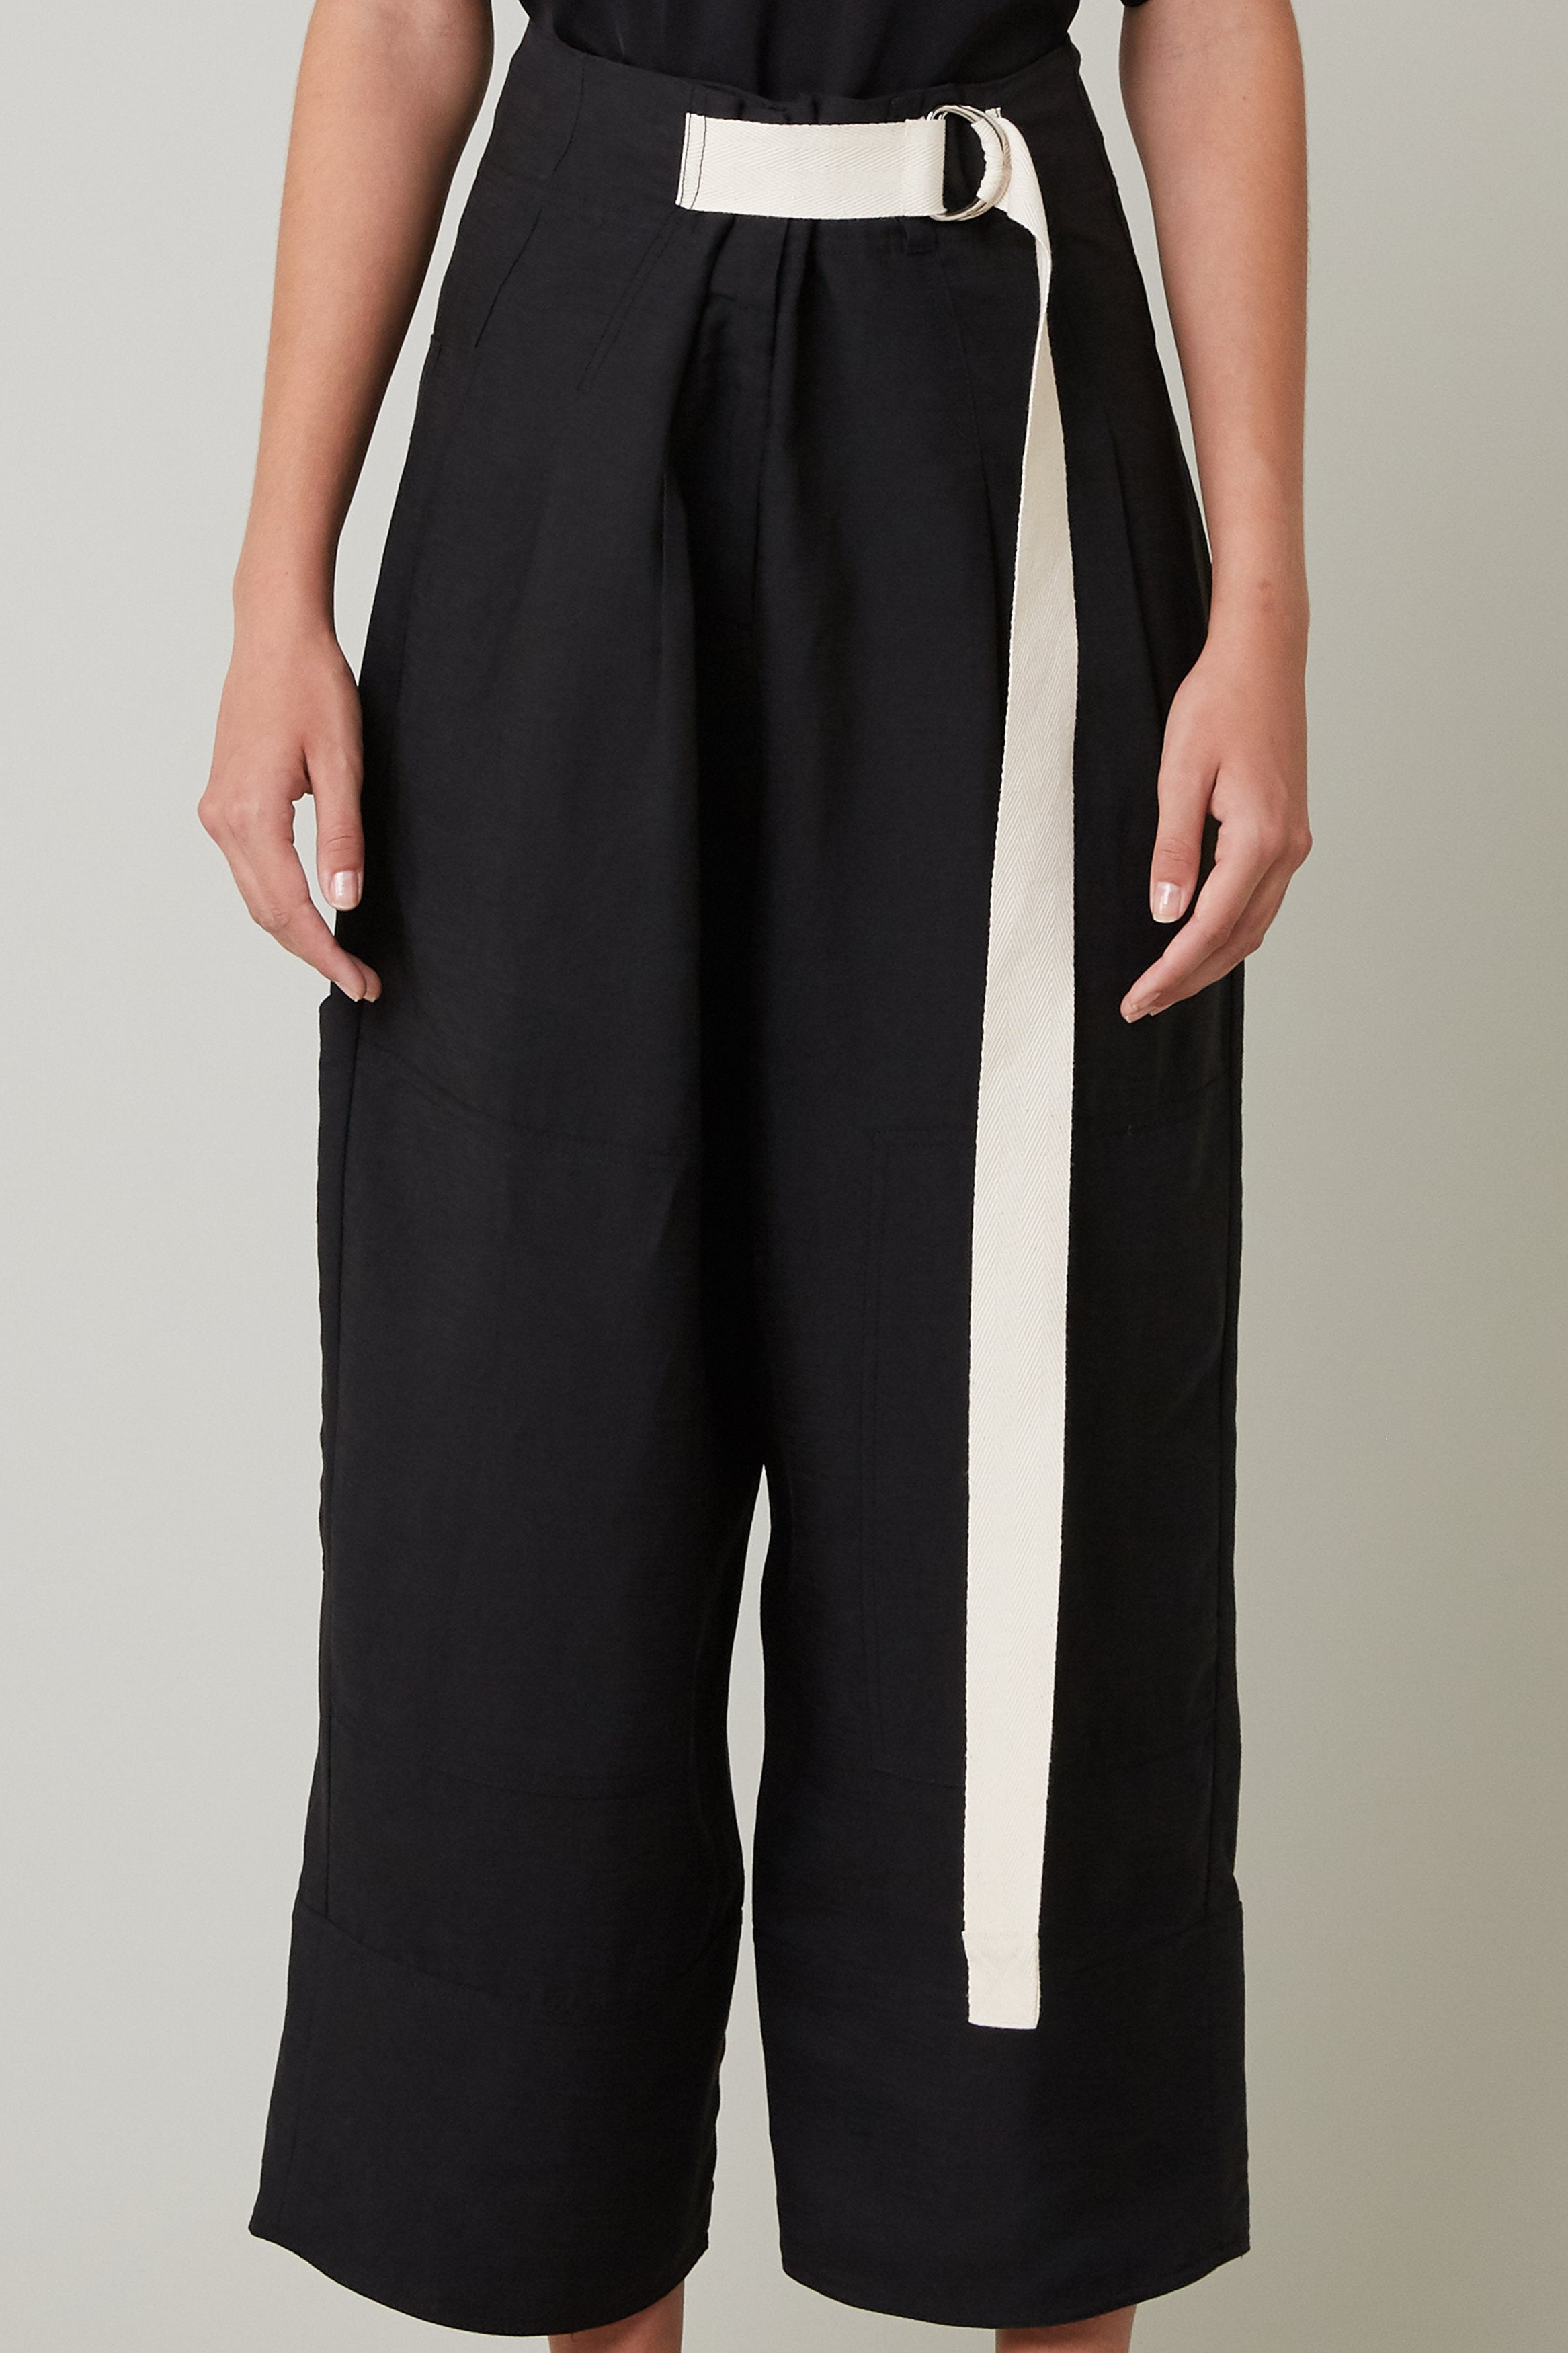 Lee Mathews | Virginia Pleat Pants in Black